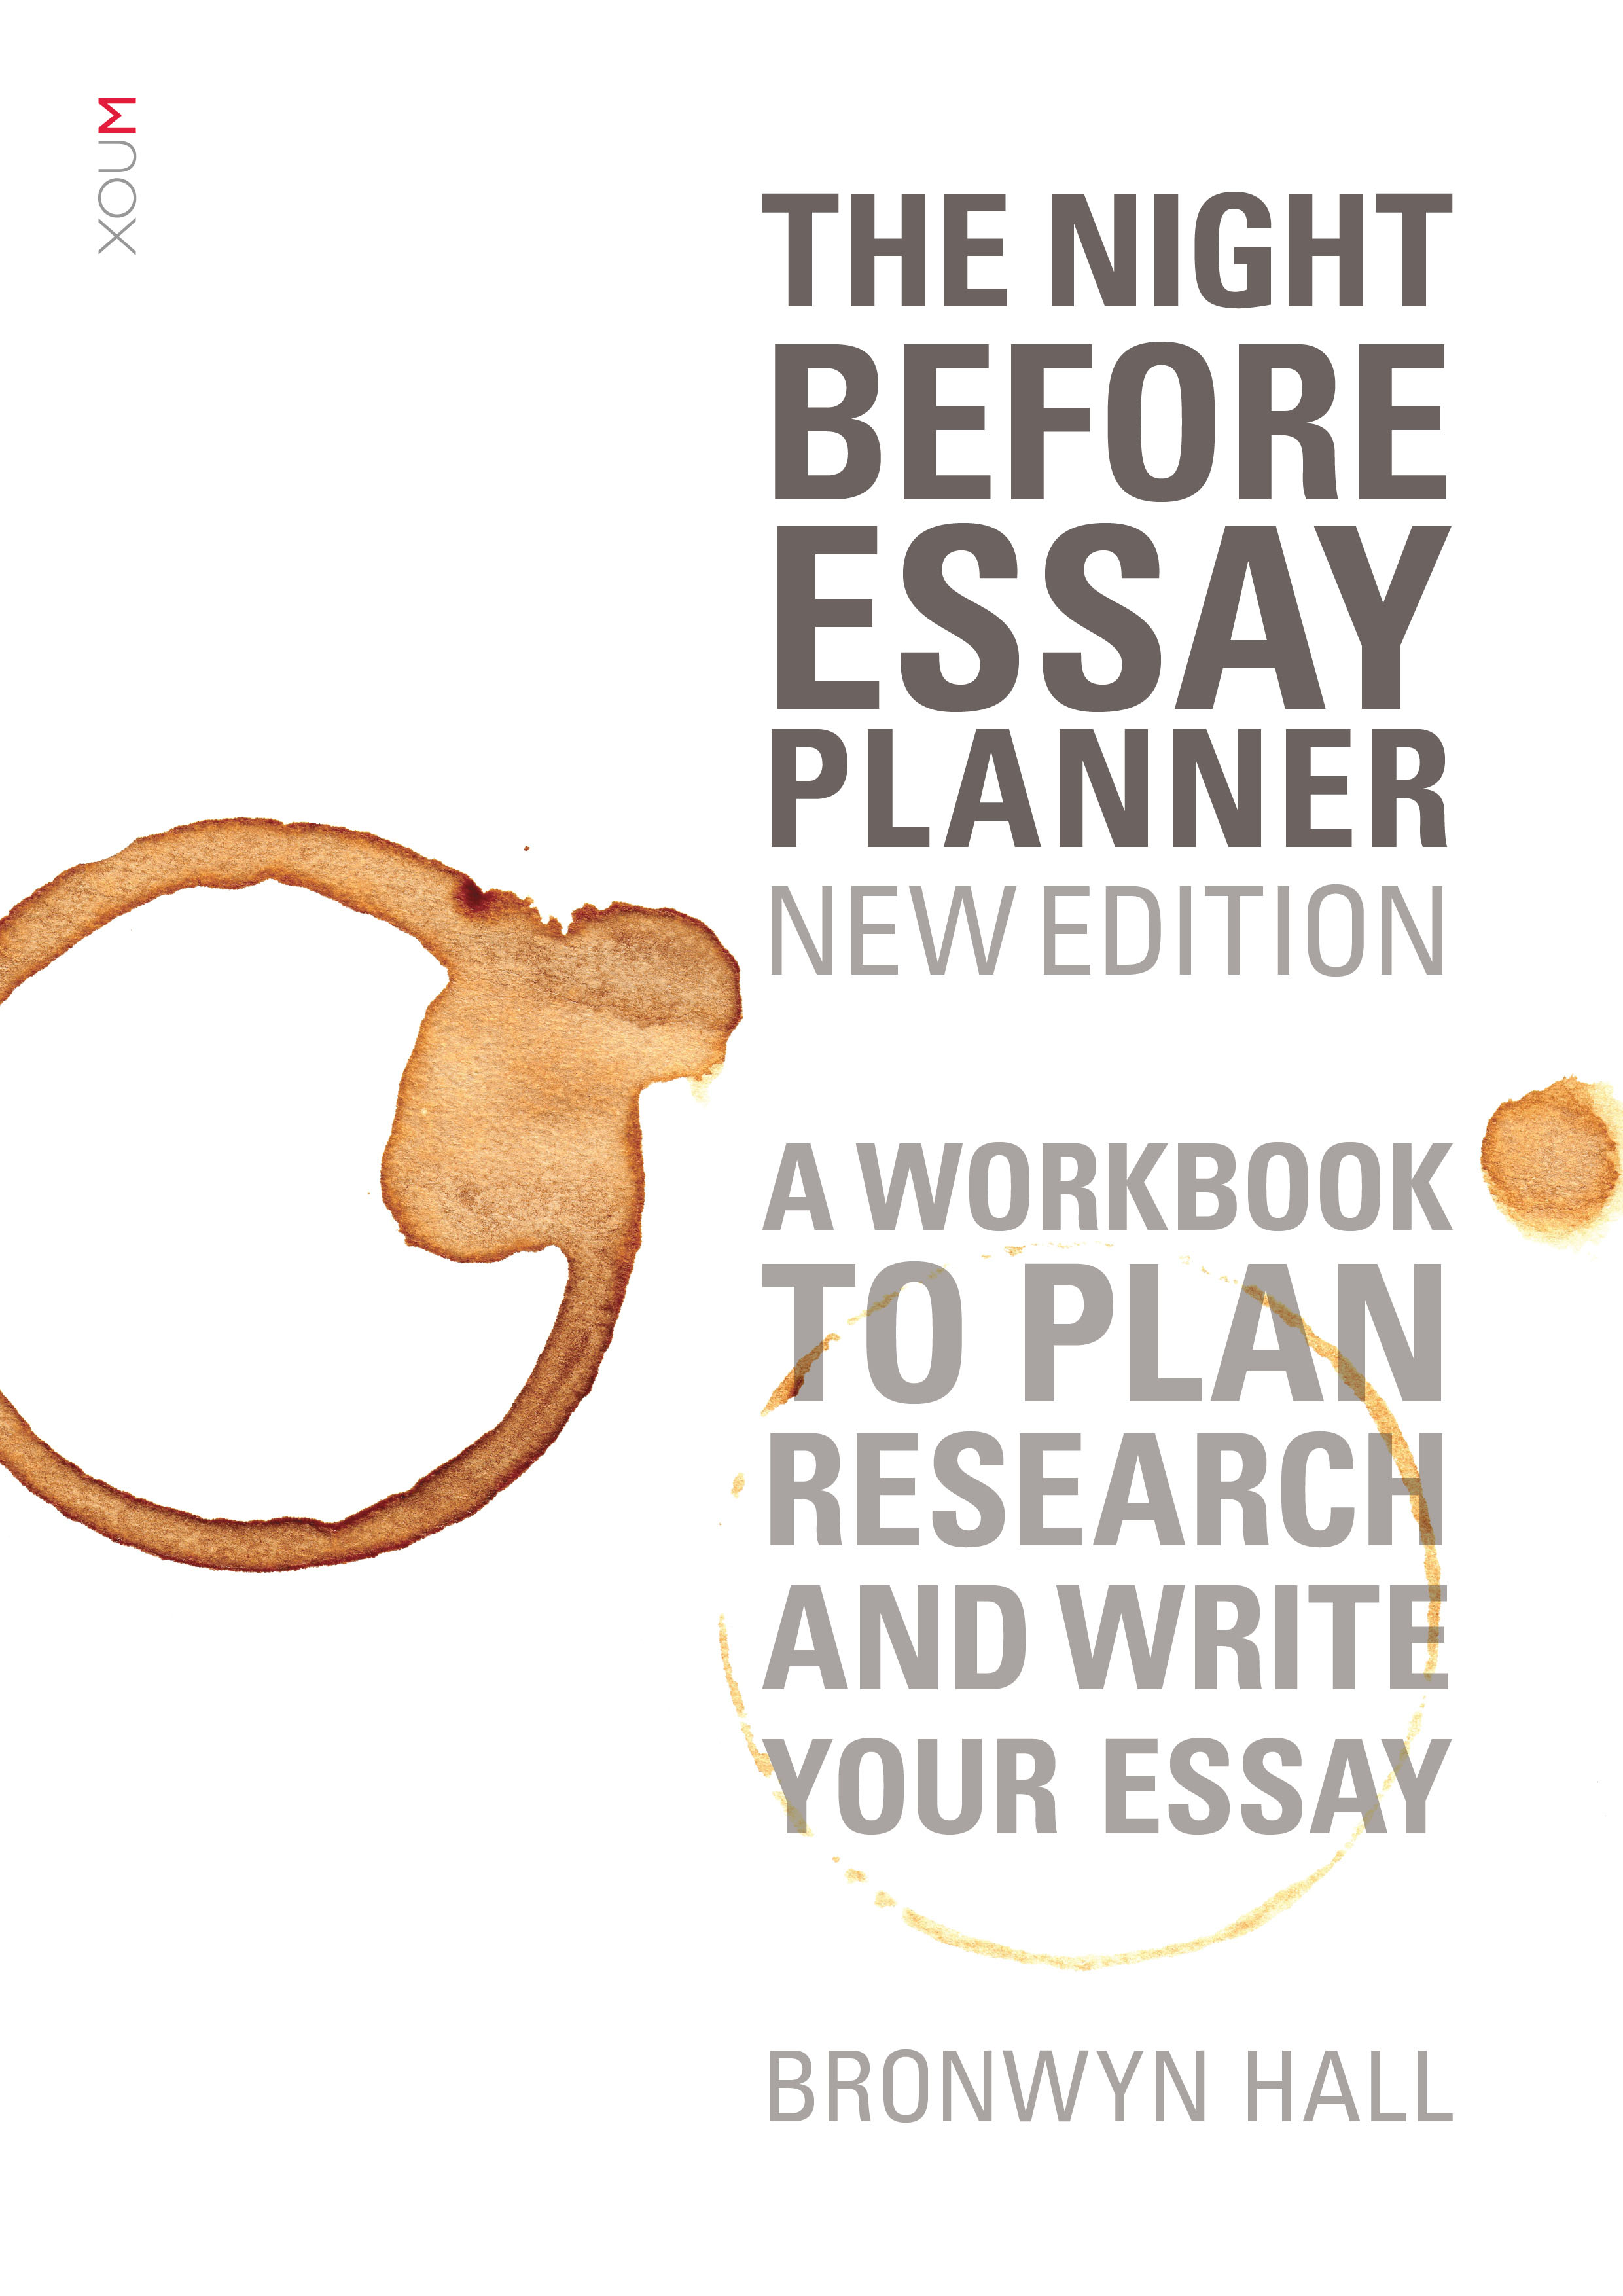 for the sake of argument essays and minority reports Title: for the sake of argument essays and minority reports author: holt mcdougal keywords: download books for the sake of argument essays and minority reports.